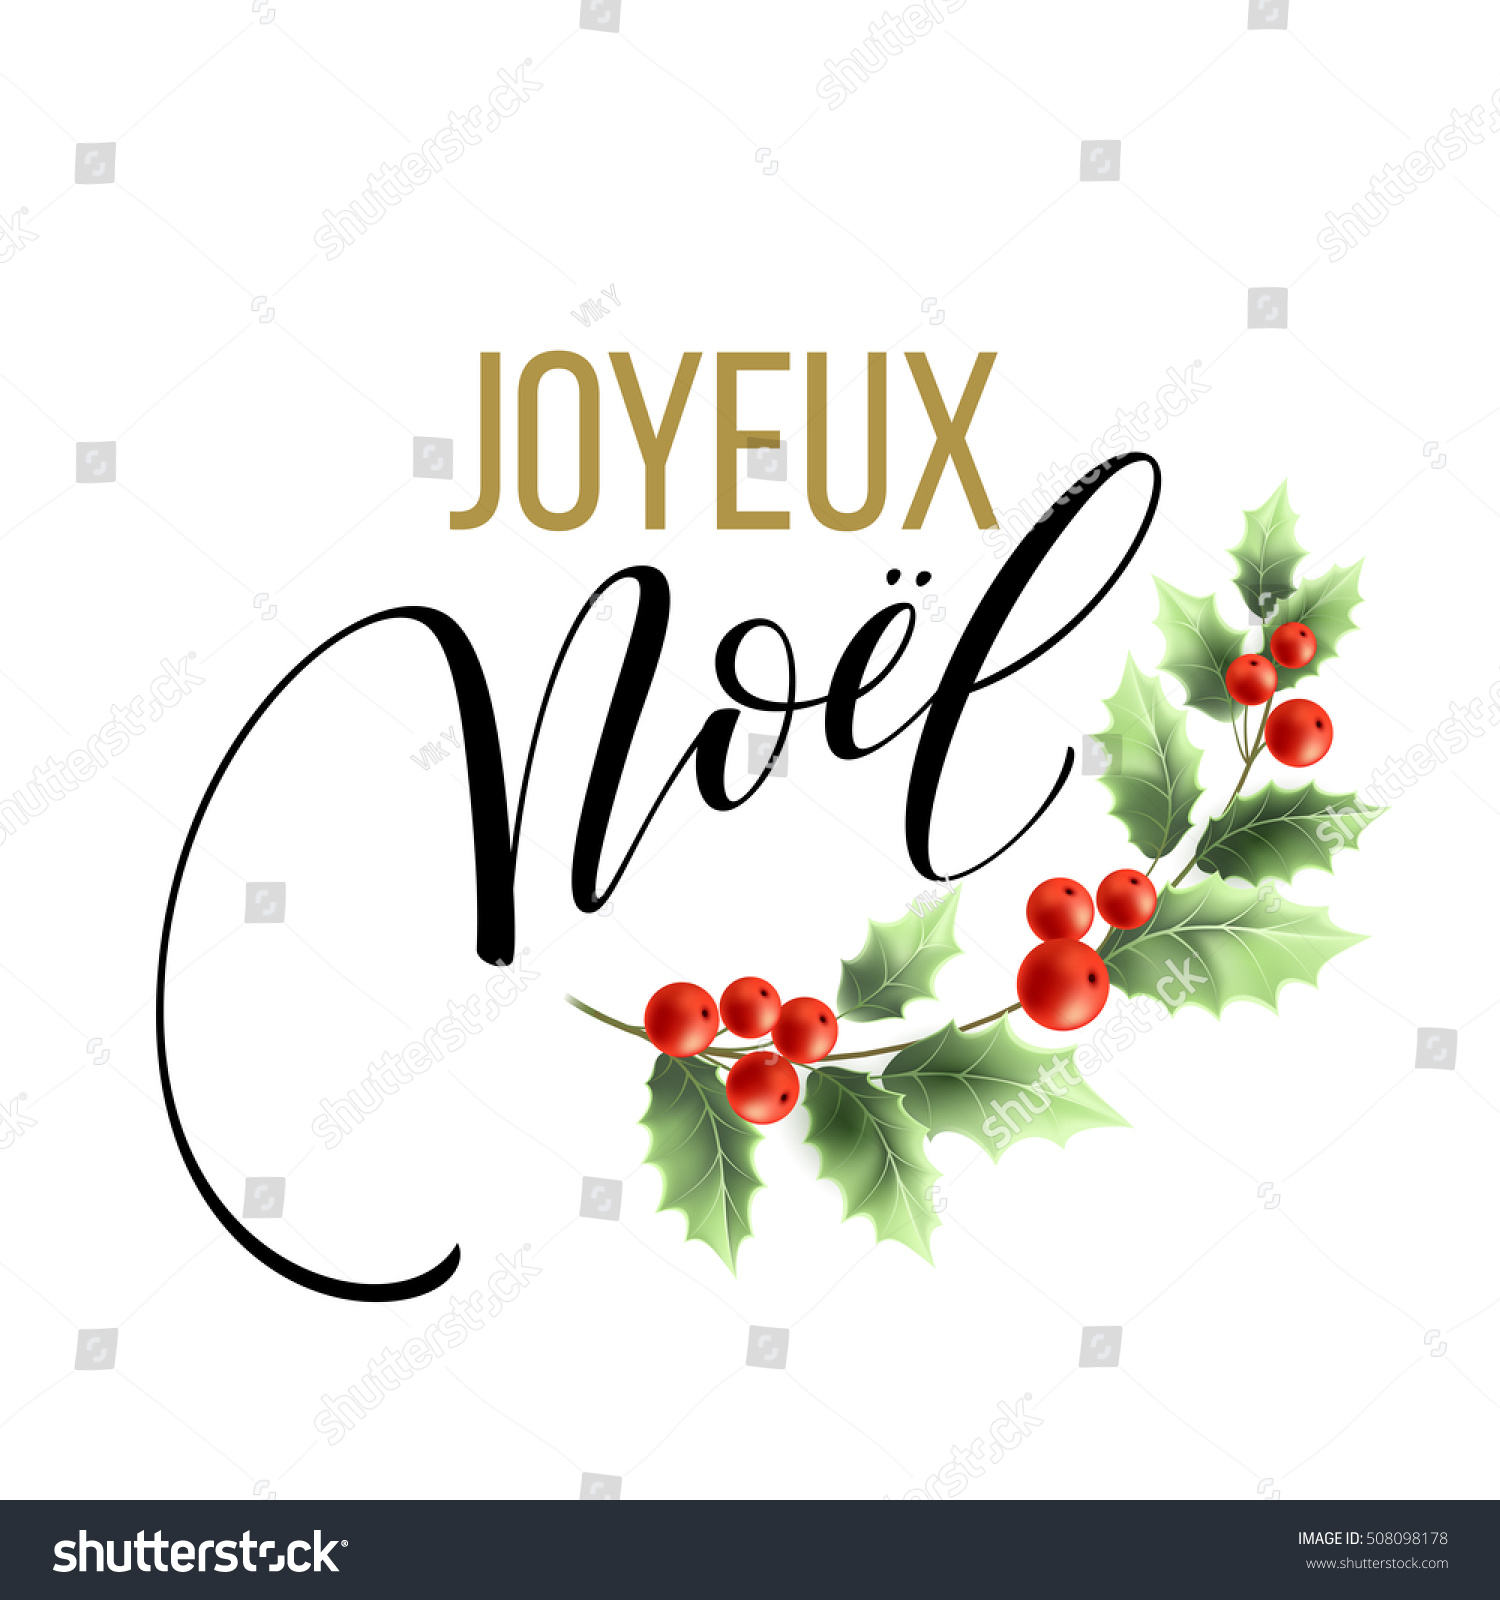 merry christmas card template greetings french stock. Black Bedroom Furniture Sets. Home Design Ideas